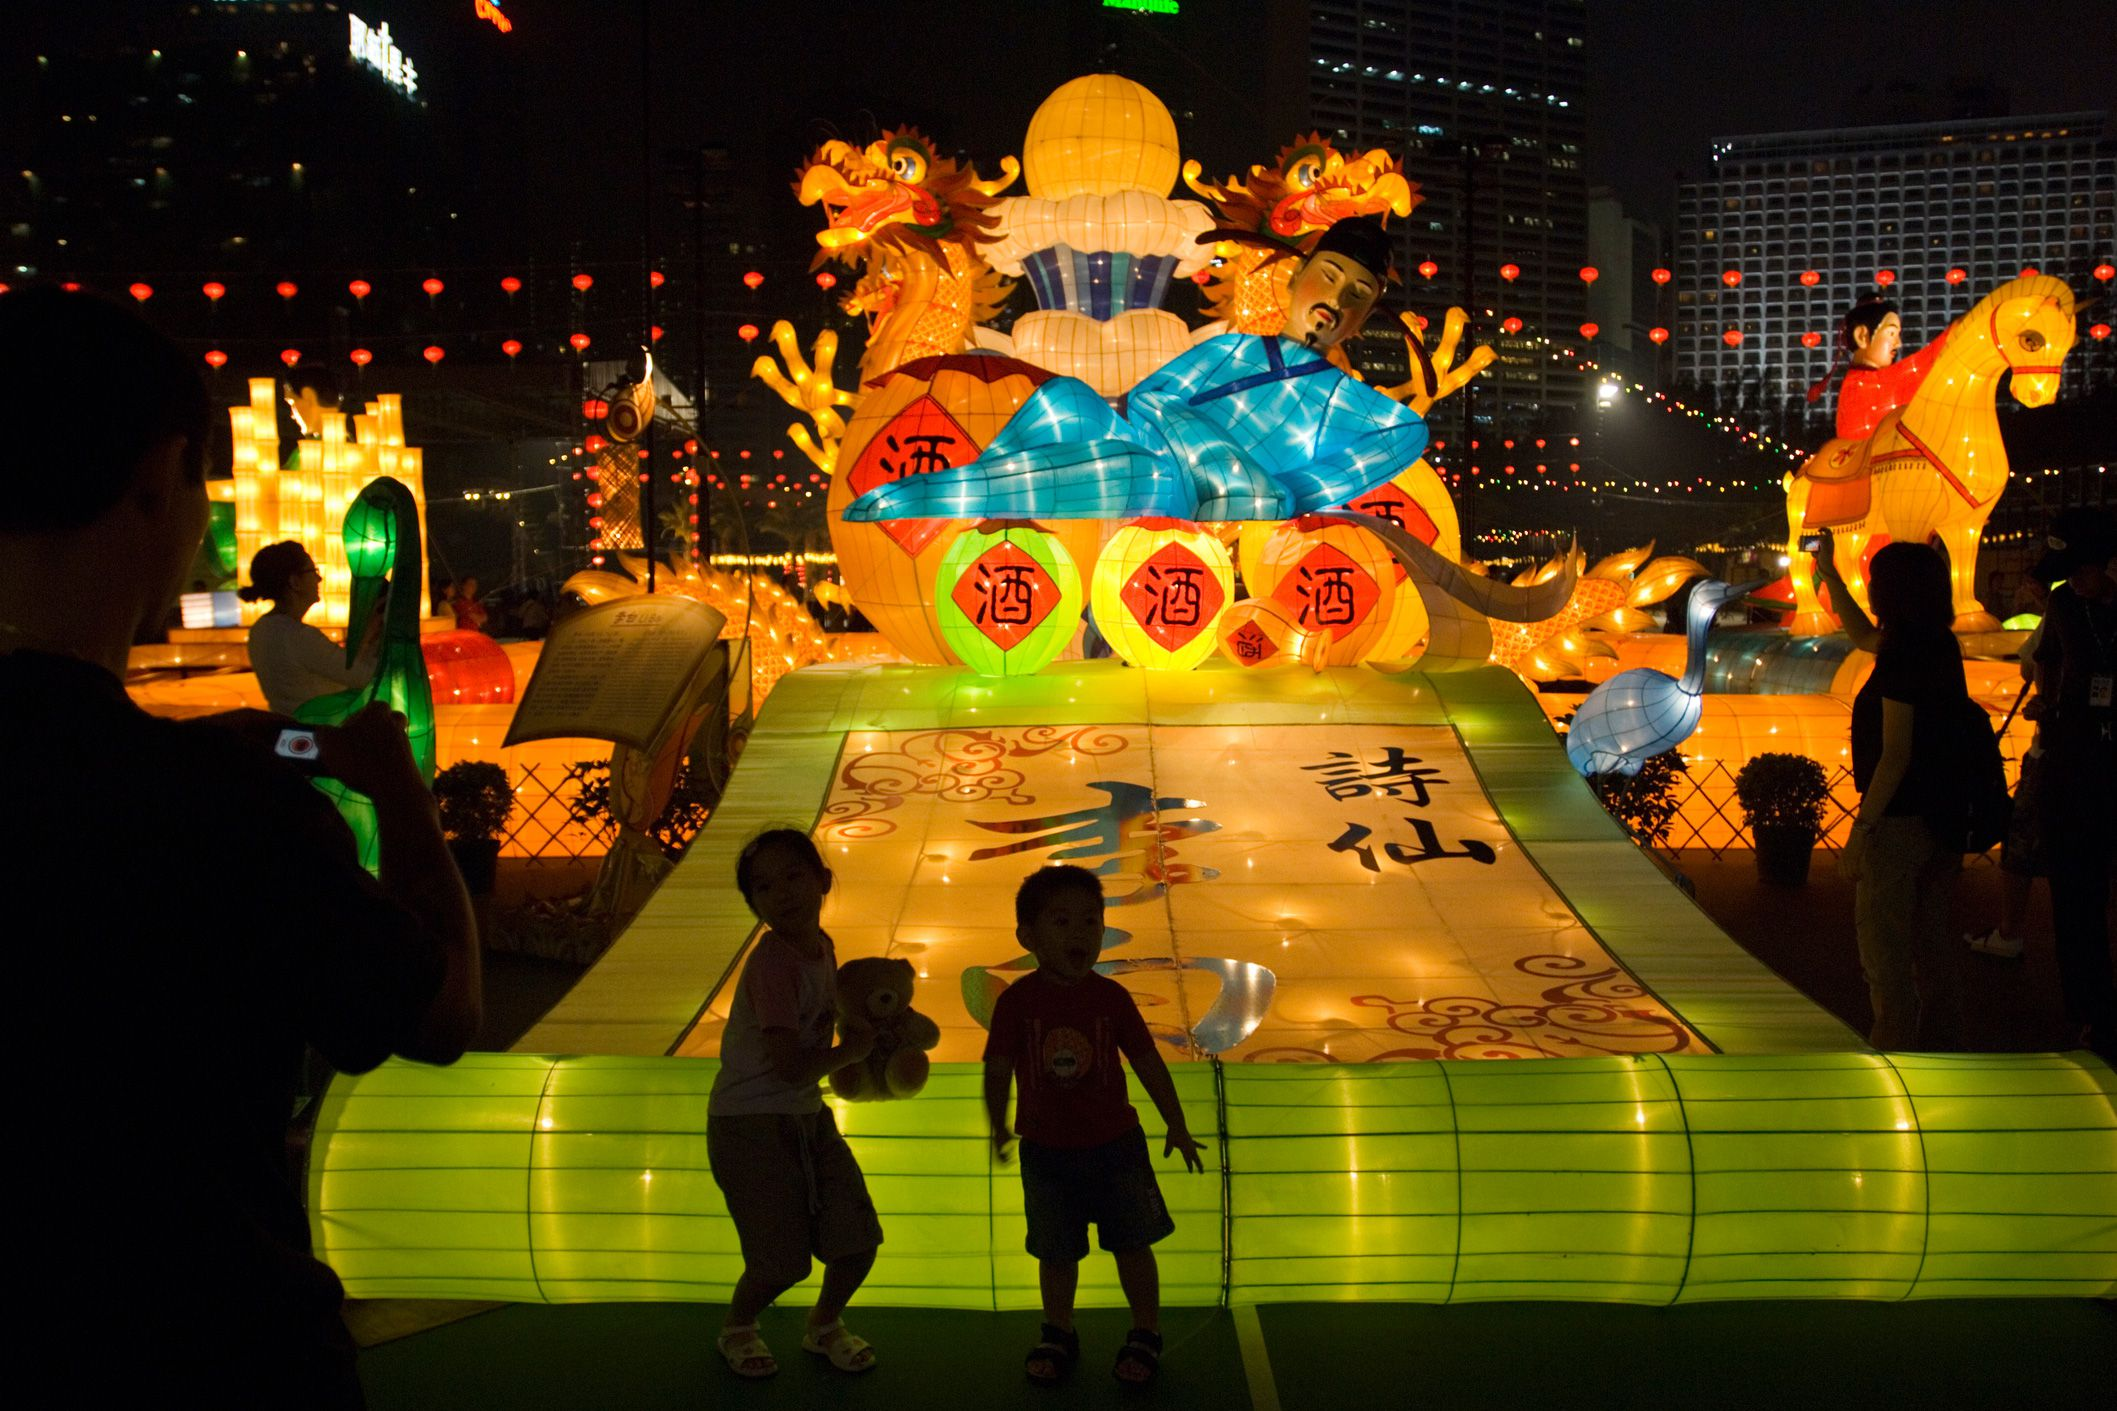 chinese moon festival - HD2117×1411